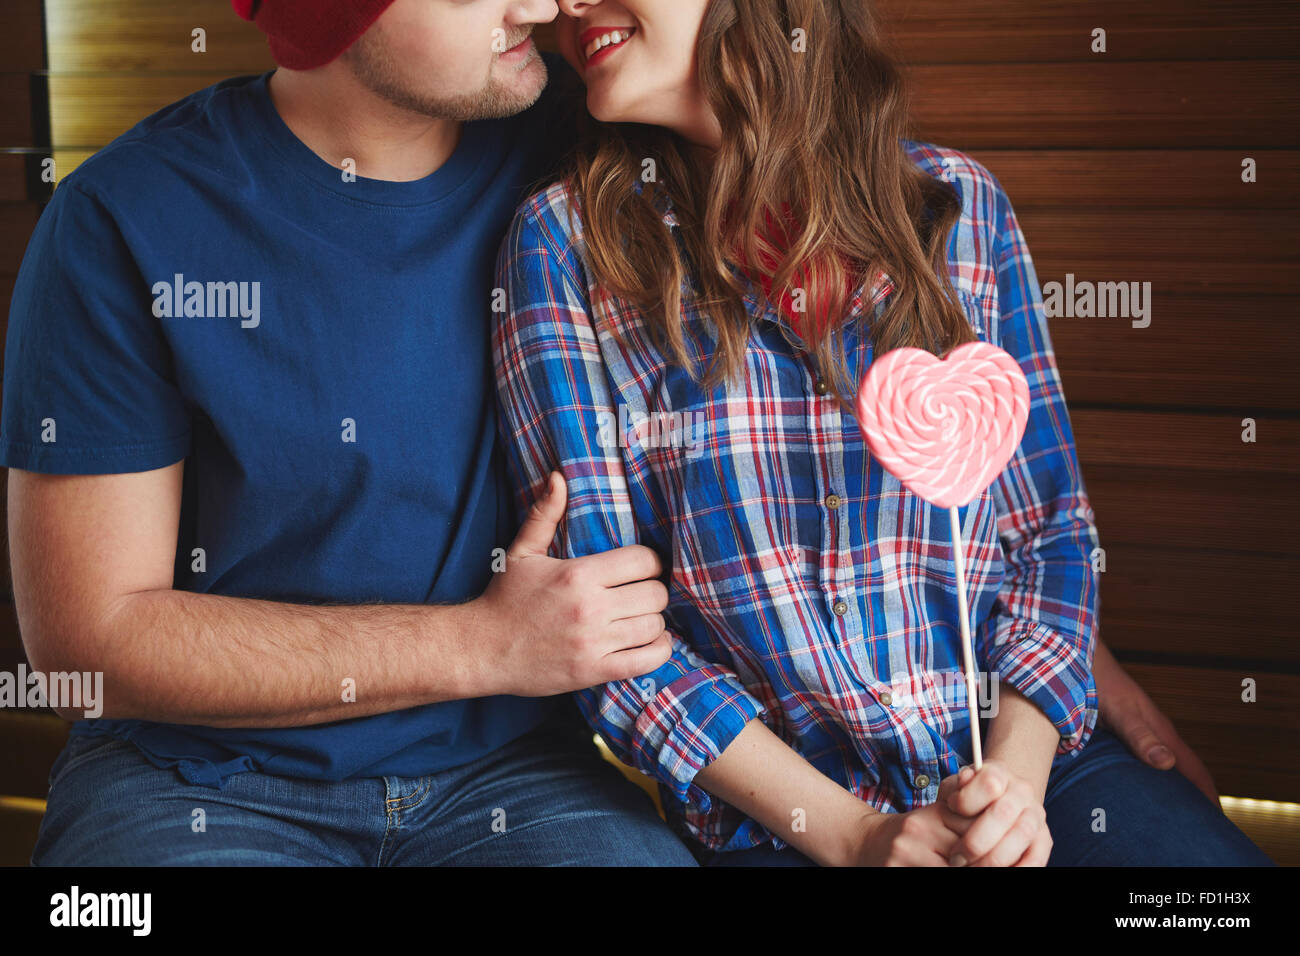 Amorous woman with heartshaped candy flirting with young man - Stock Image